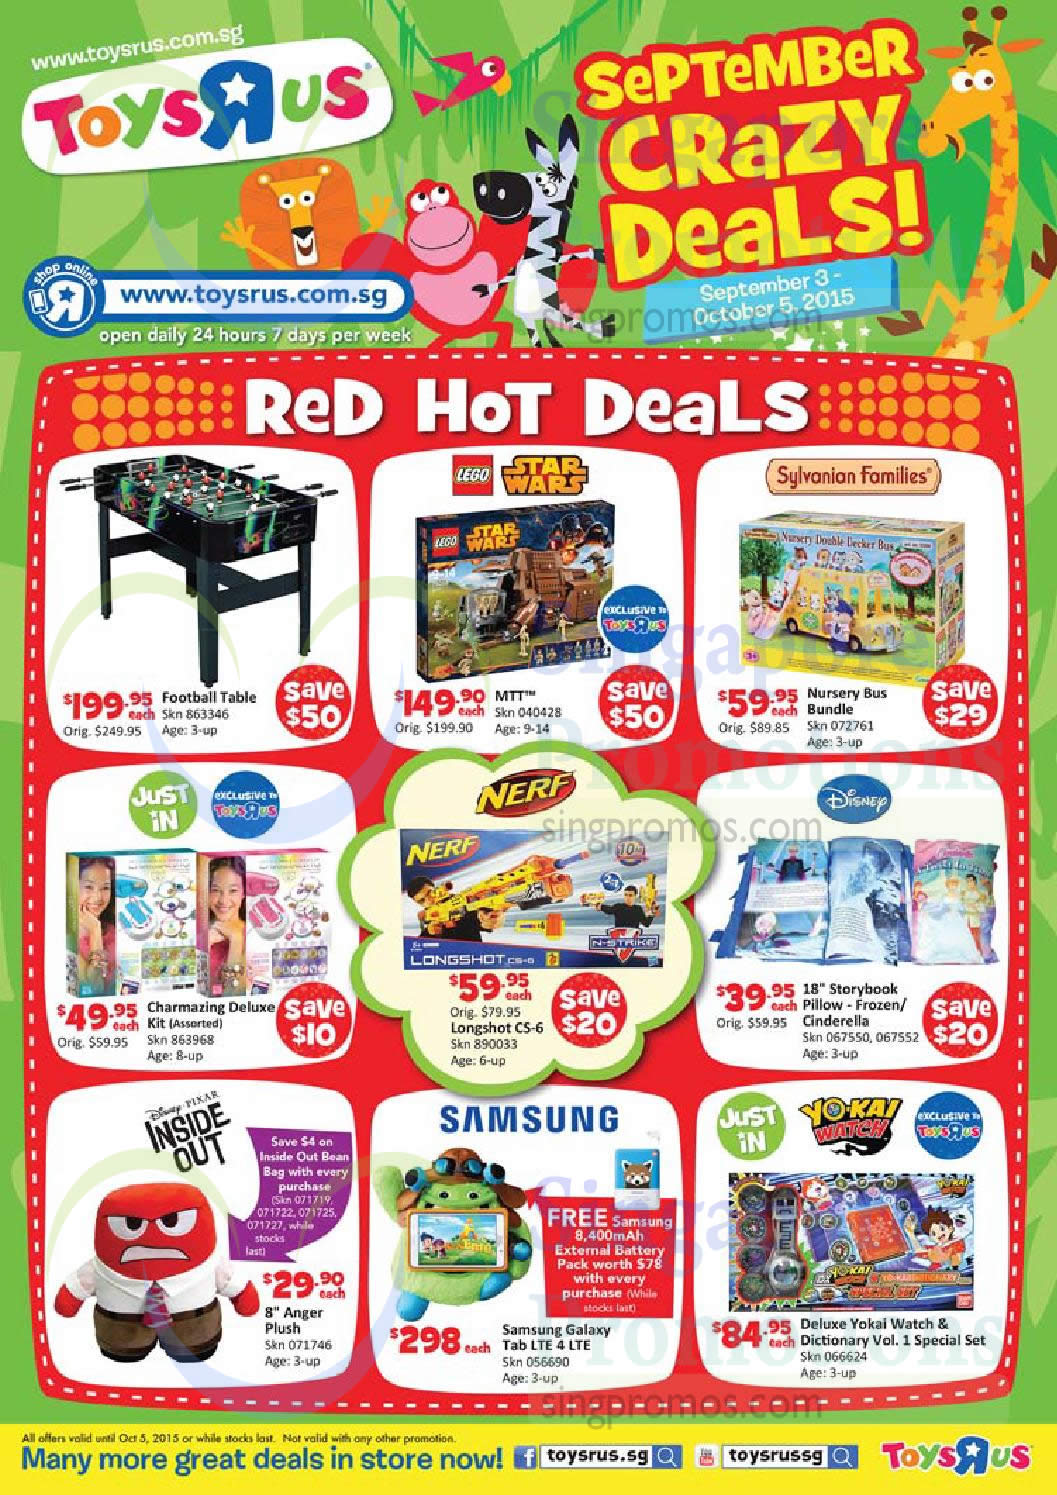 Lego 040428 Star Wars, Sylvanian Families 072761 Nursery Bus Bundle, Nerf Longshot C5-6, Samsung Galaxy Tab LTE 4, Deluxe Yokai Watch & Dictionary Vol. 1